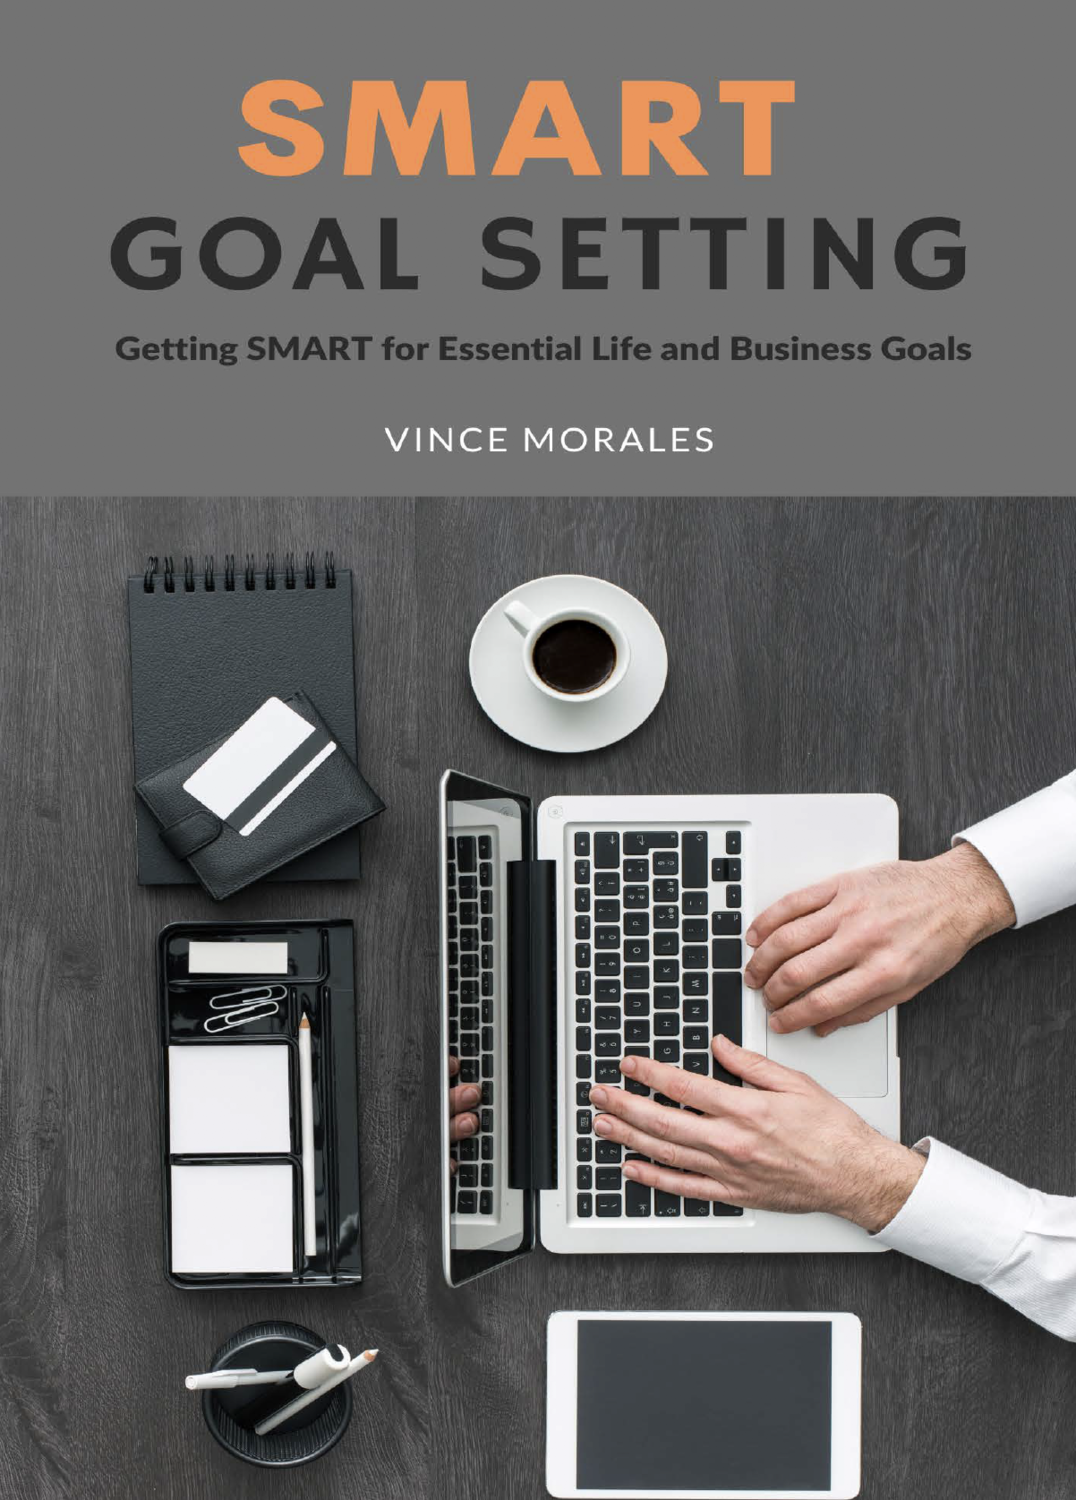 SMART Goal Setting by Vince Morales